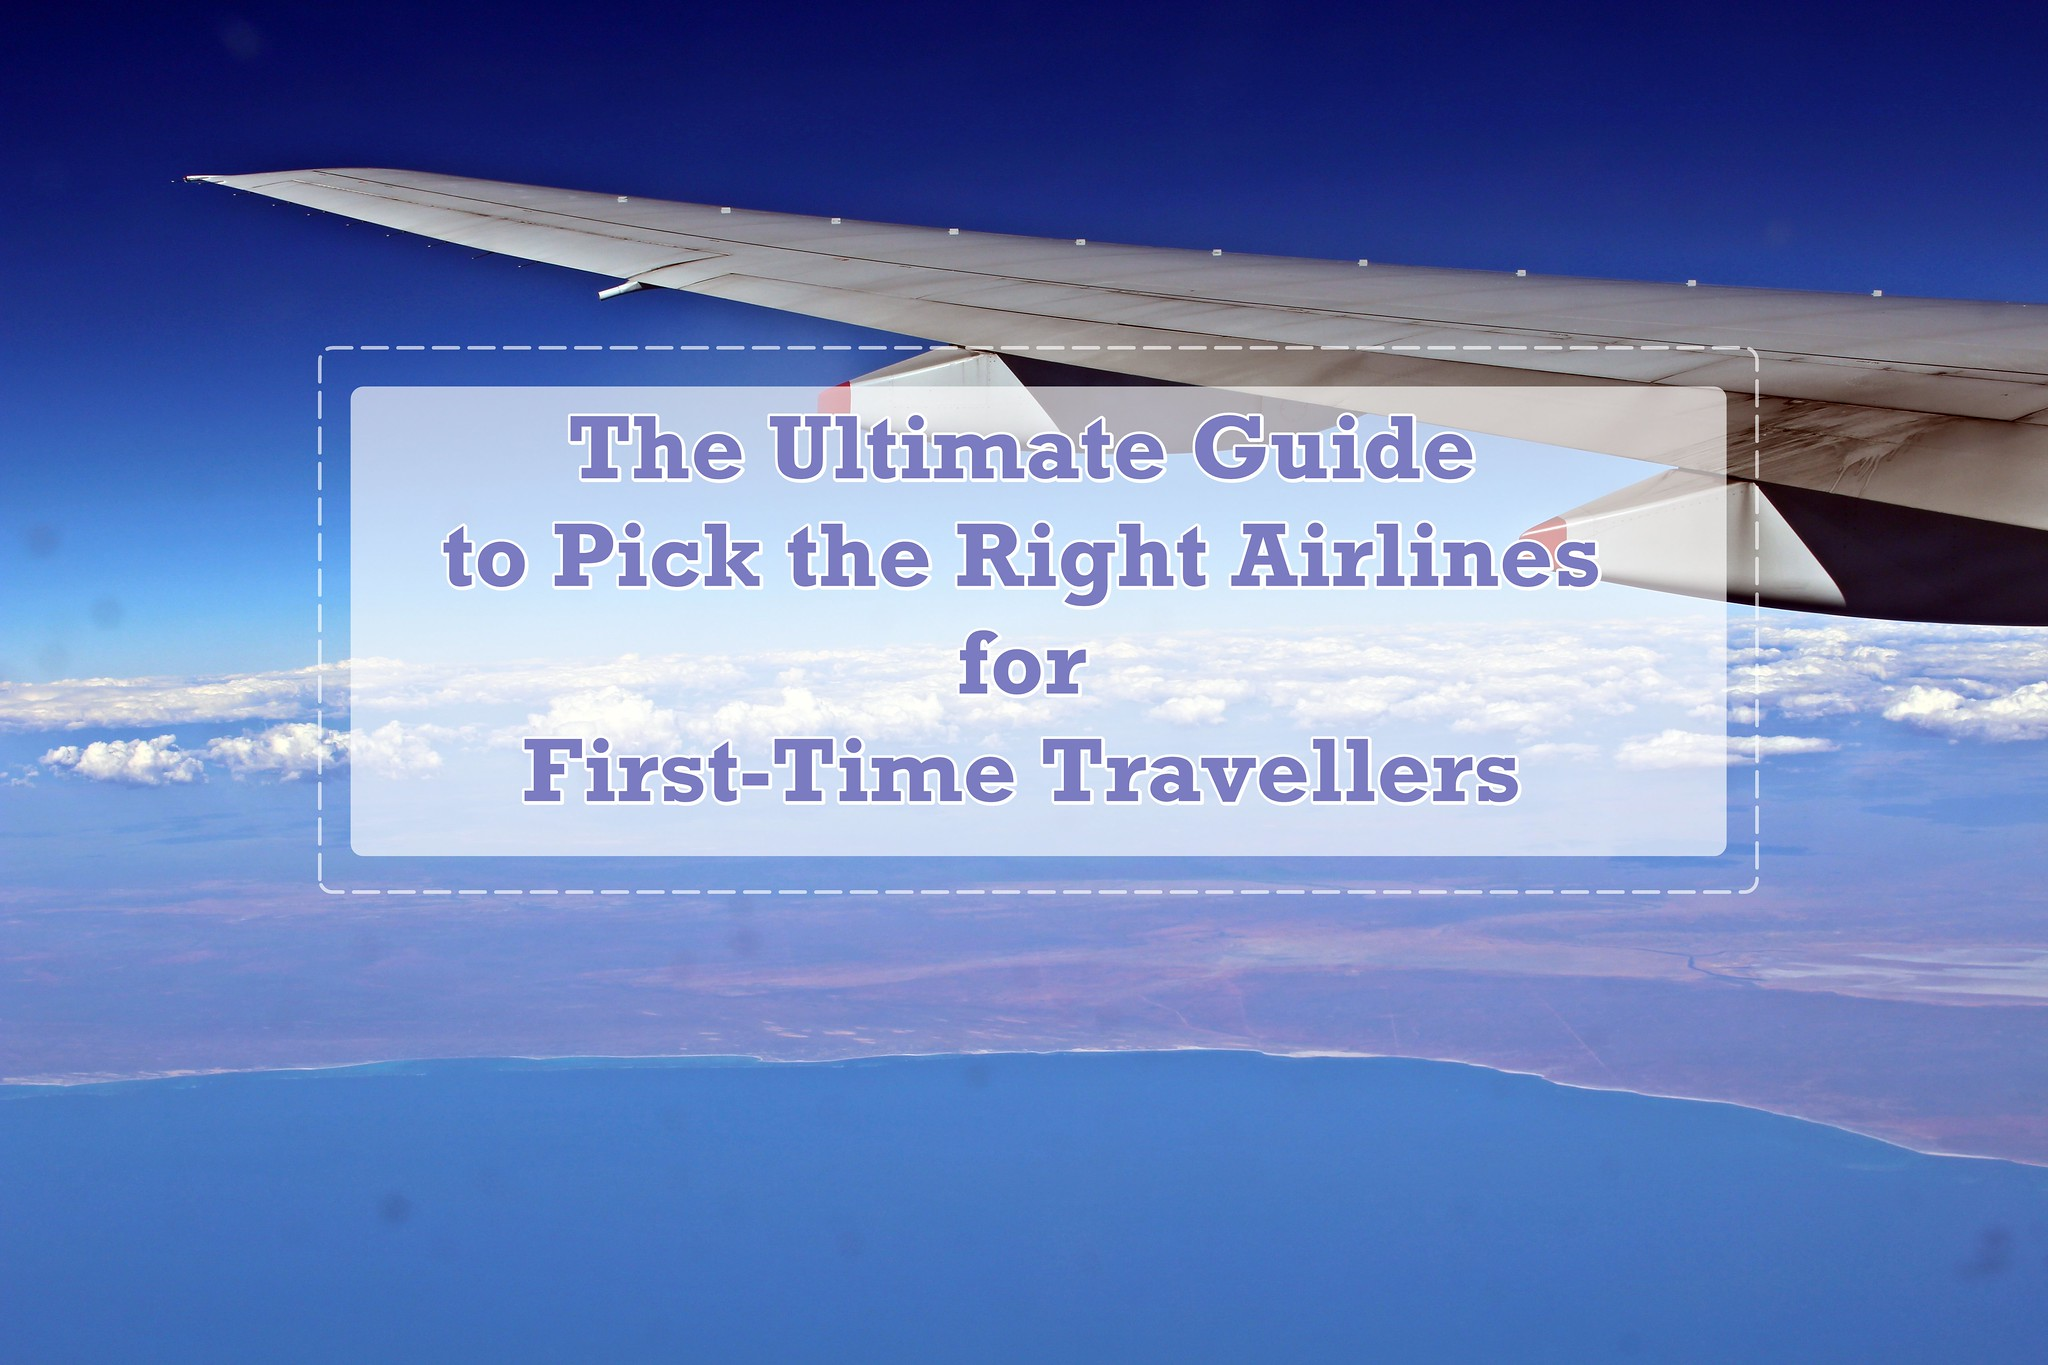 [TRAVEL TIPS]The Ultimate Guide to Pick the Right Airlines for First-Time Travellers